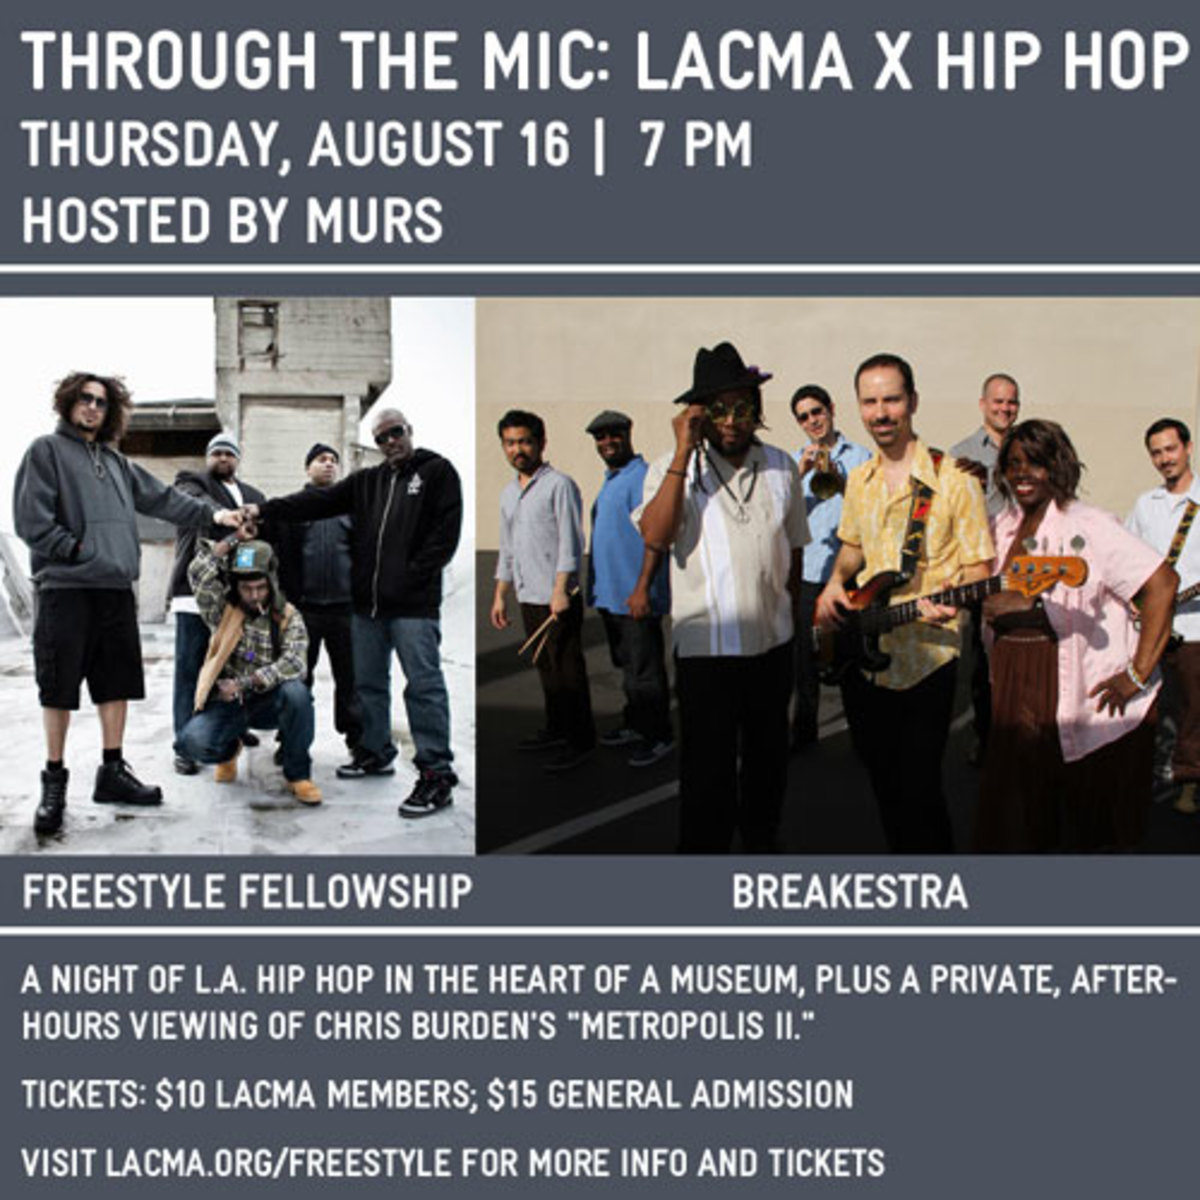 freestylefellowship-lacma.jpg